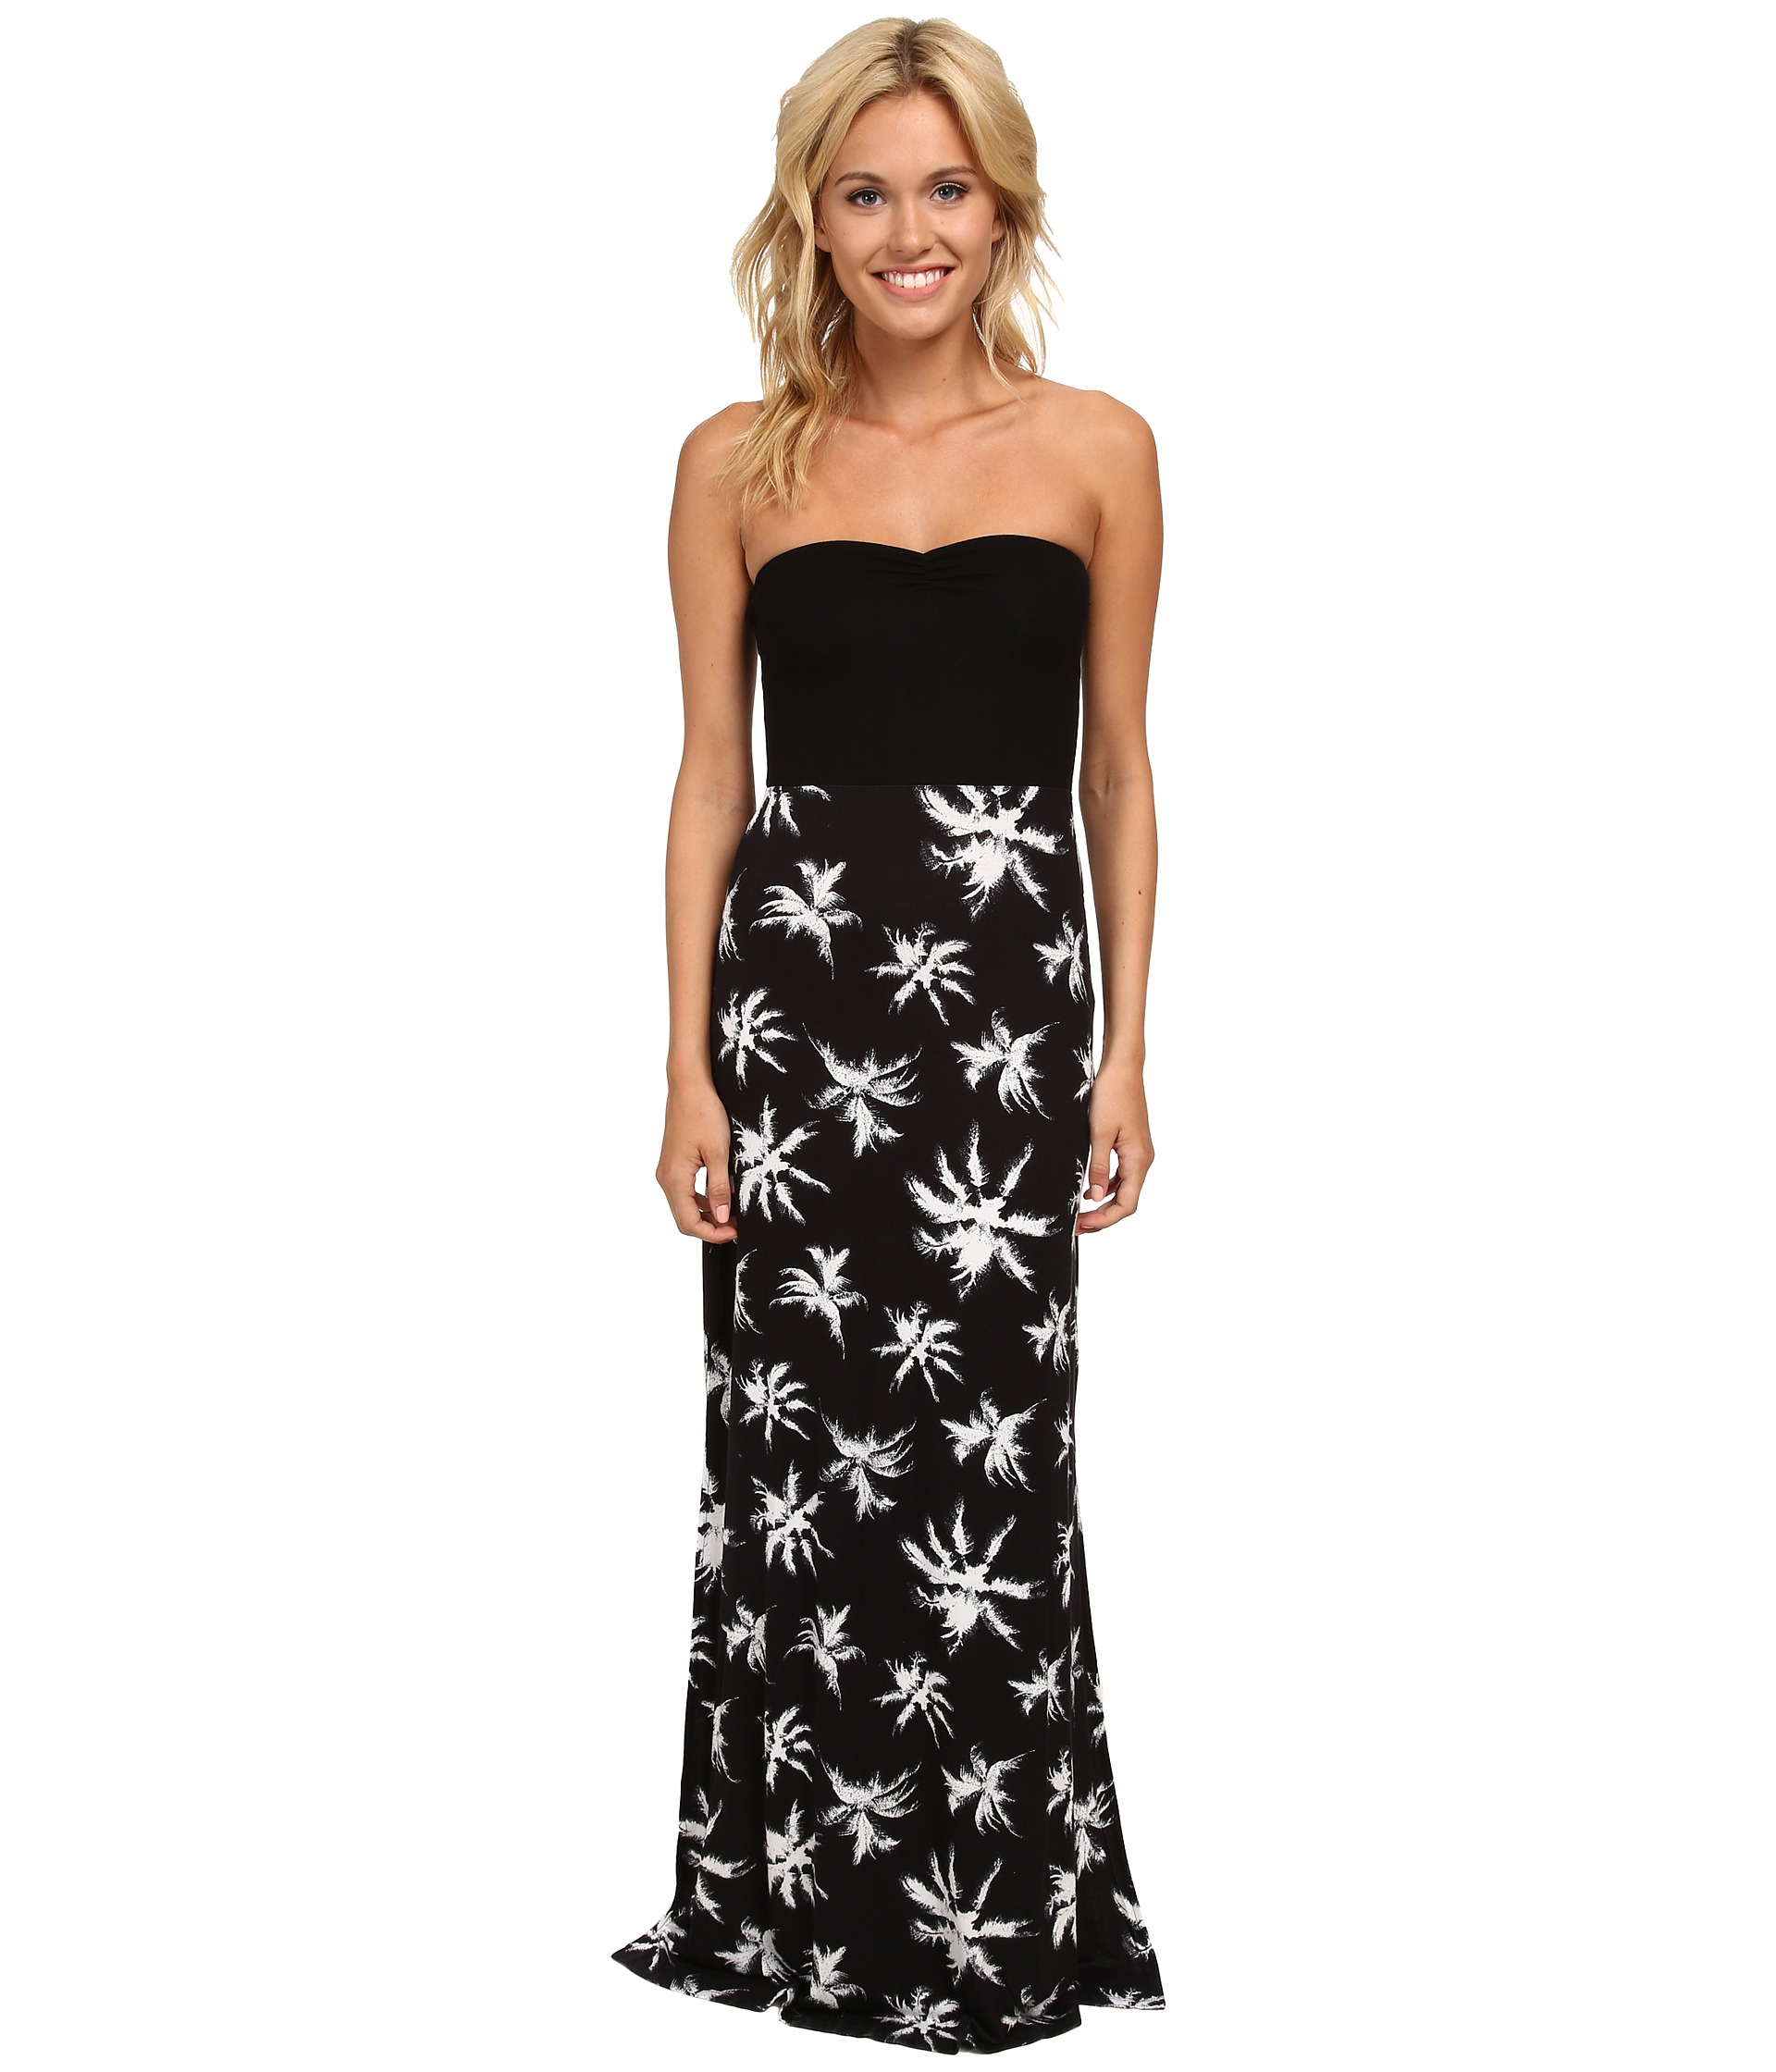 Hurley Tomboy Maxi Strapless Dress in Black   Lyst